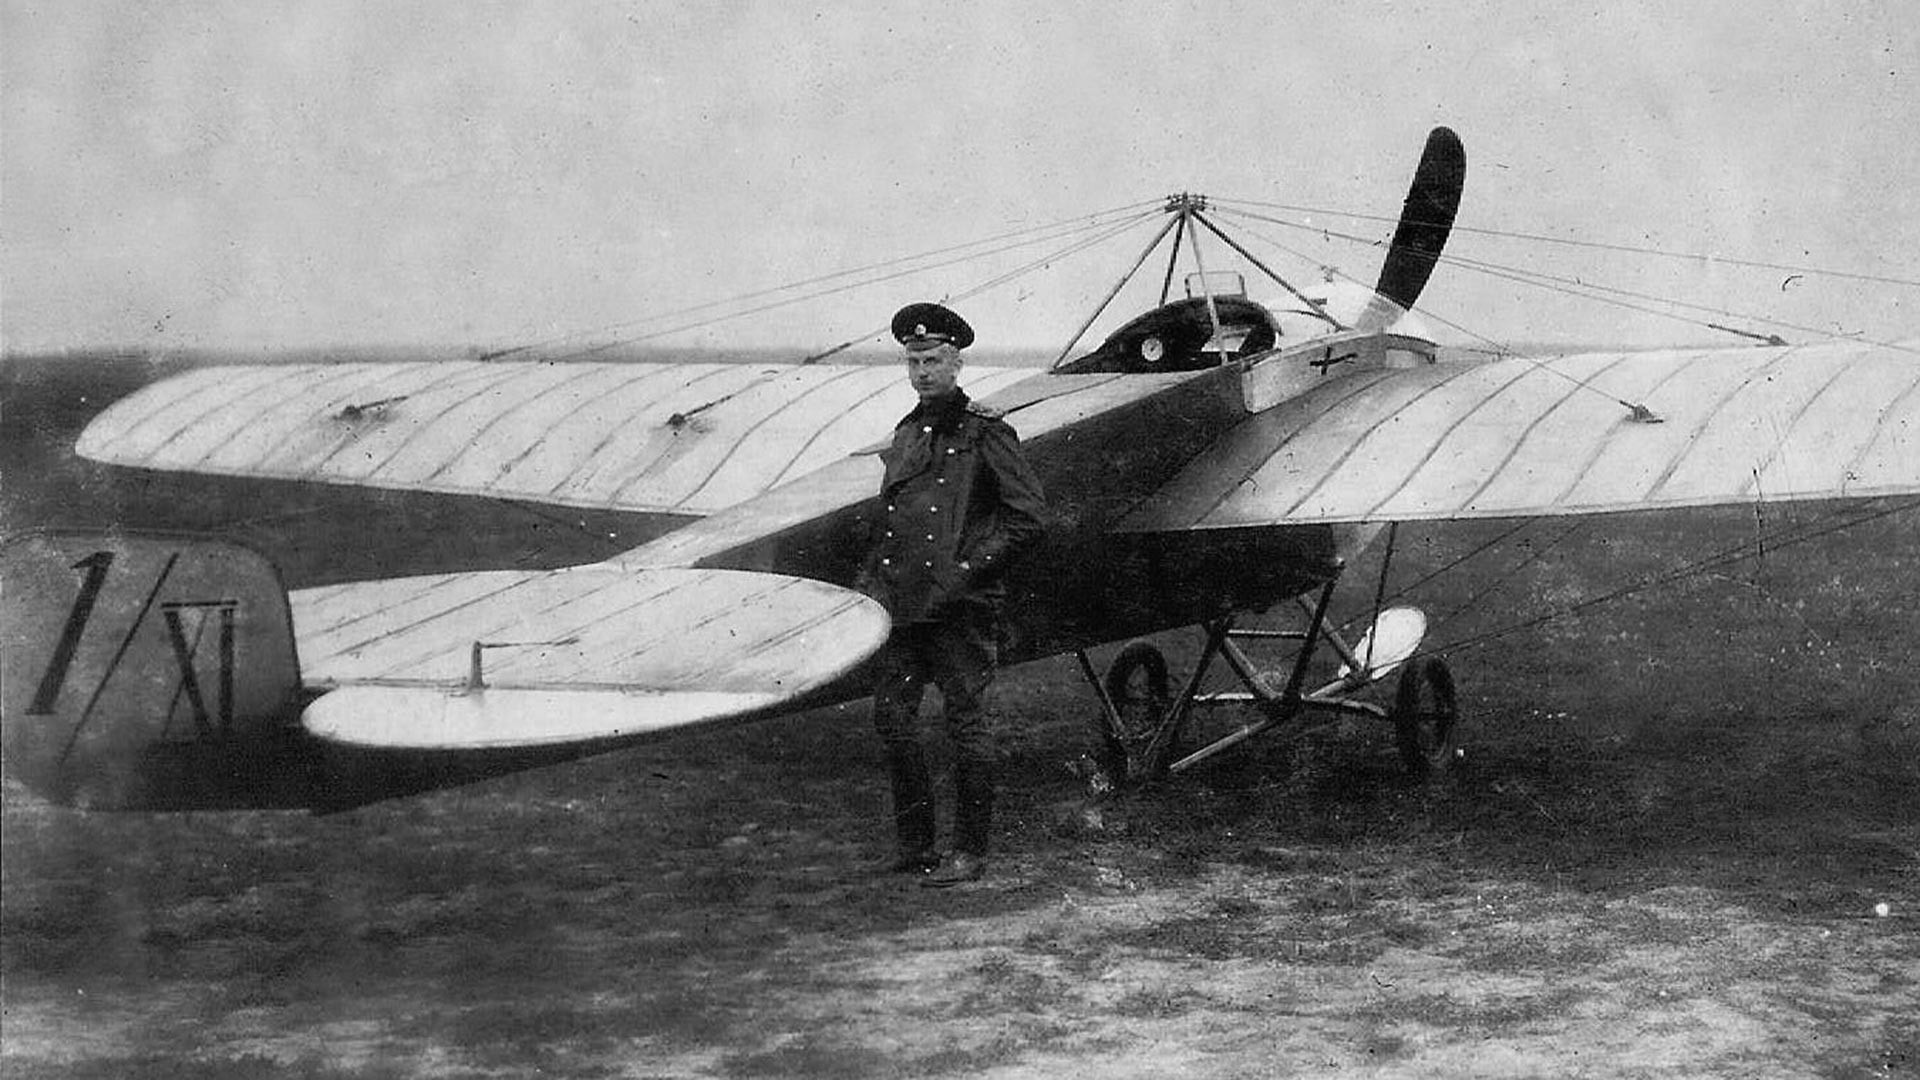 Pyotr Nesterov and the Nieuport IV.G he looped.